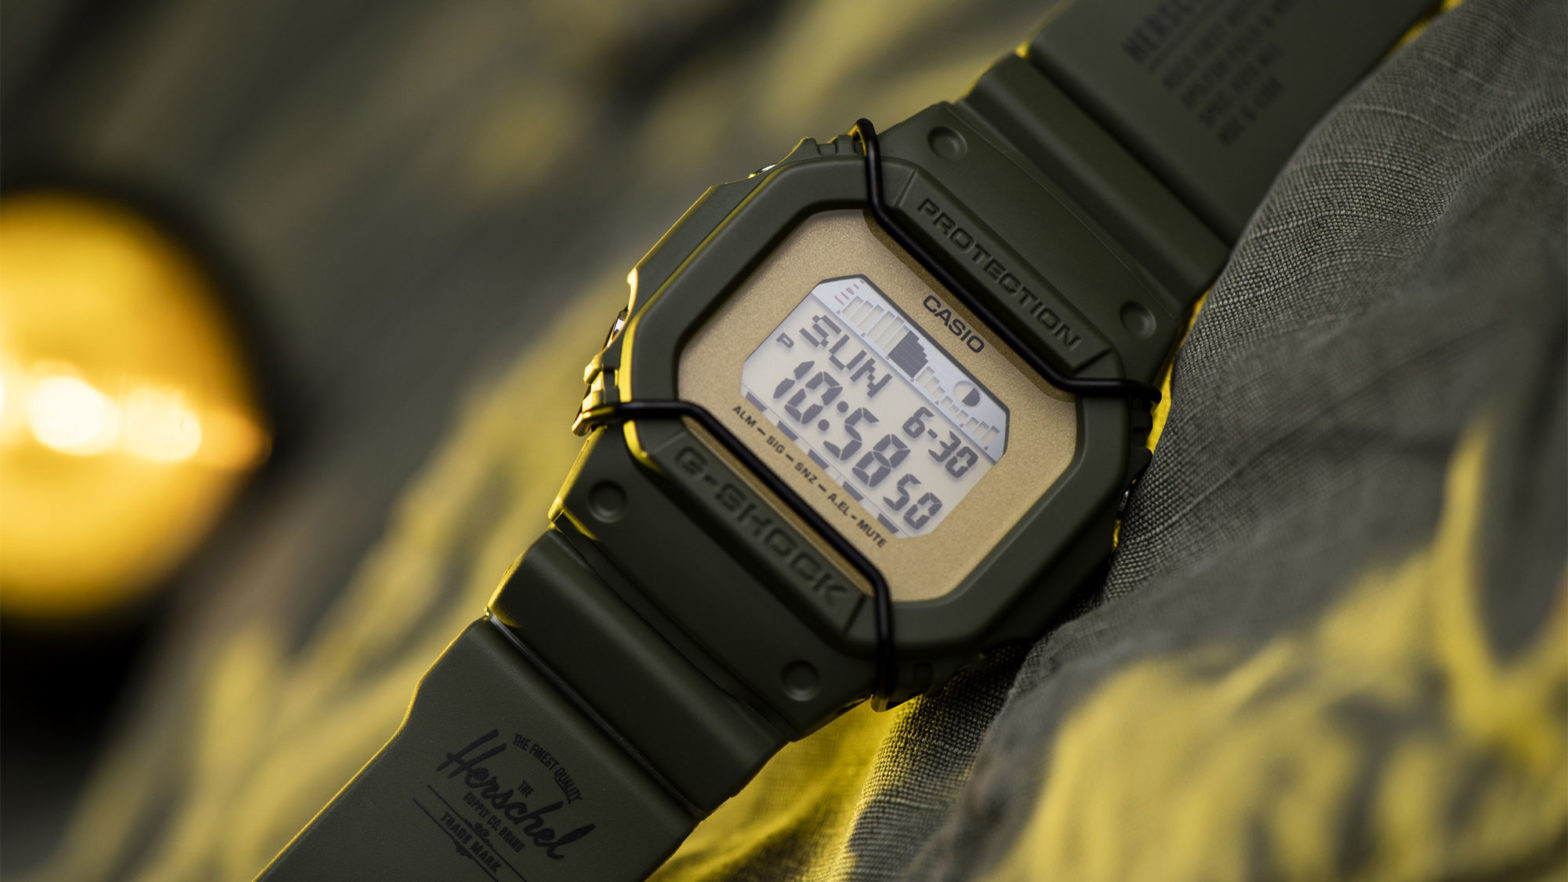 CASIO G-Shock x Herschel G-Lide Watch